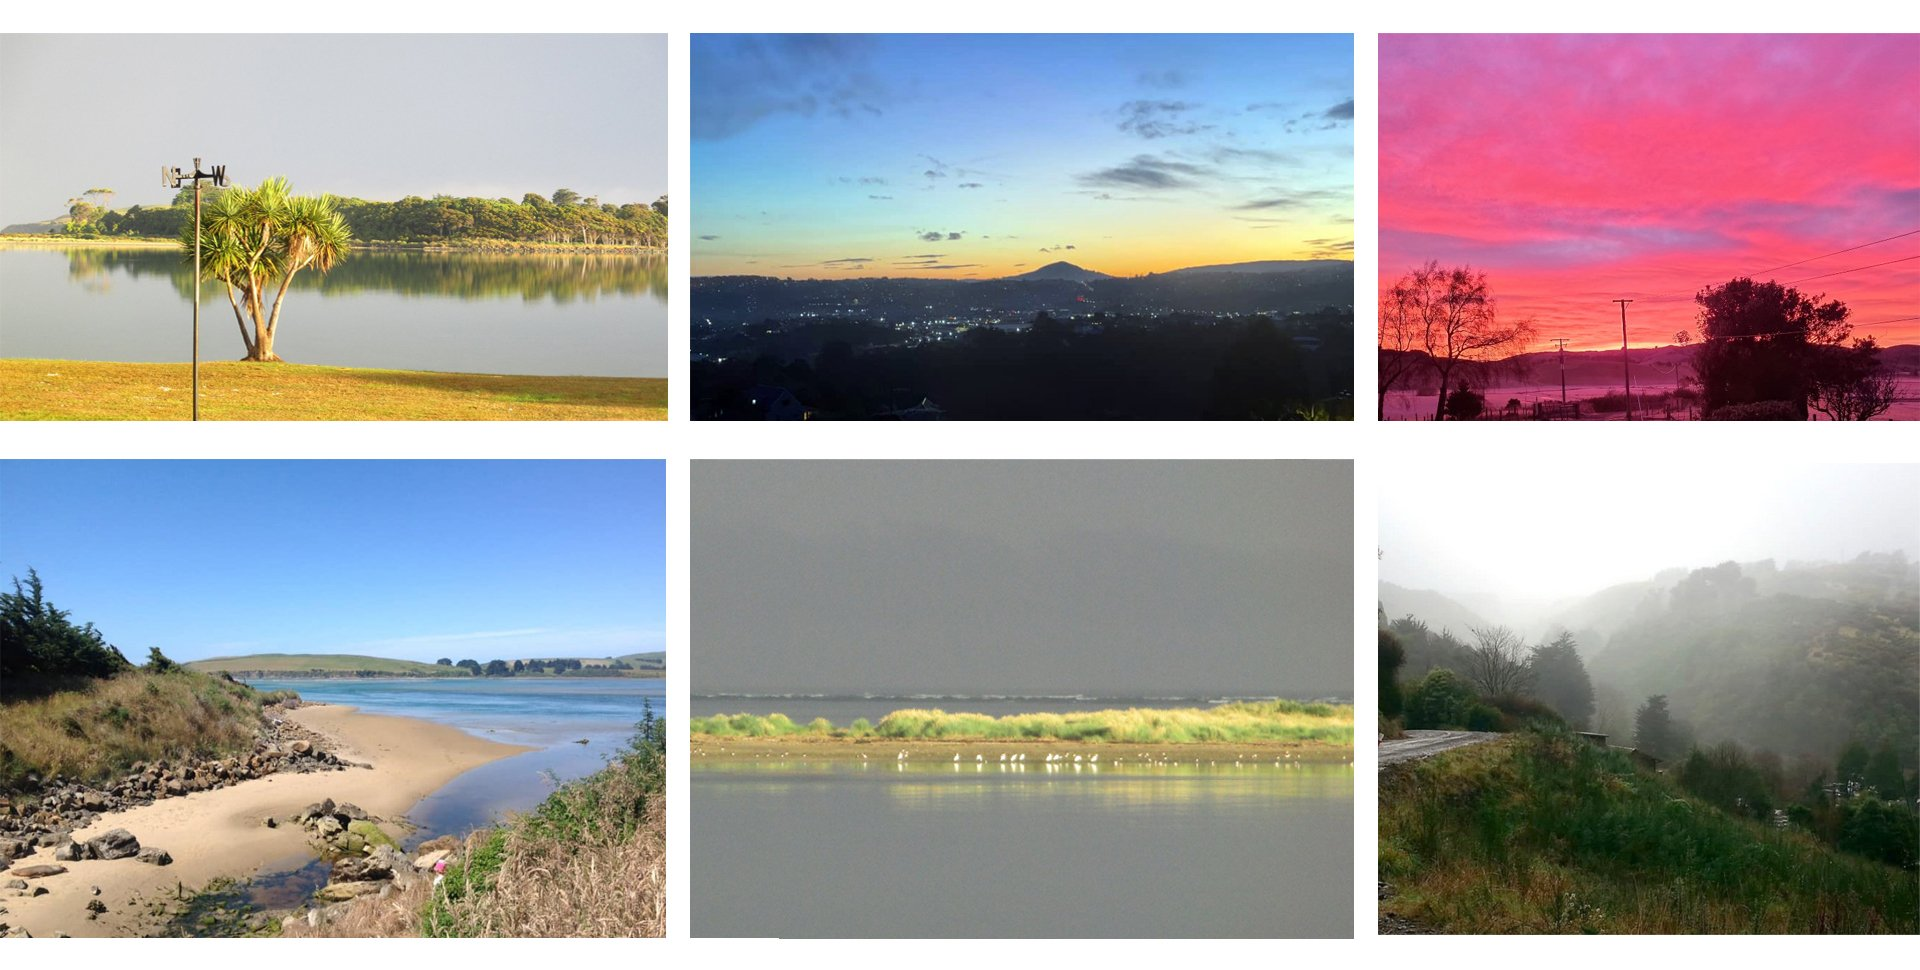 Some of the photos of backyards submitted as part of the Earthlore Photo Exhibition.